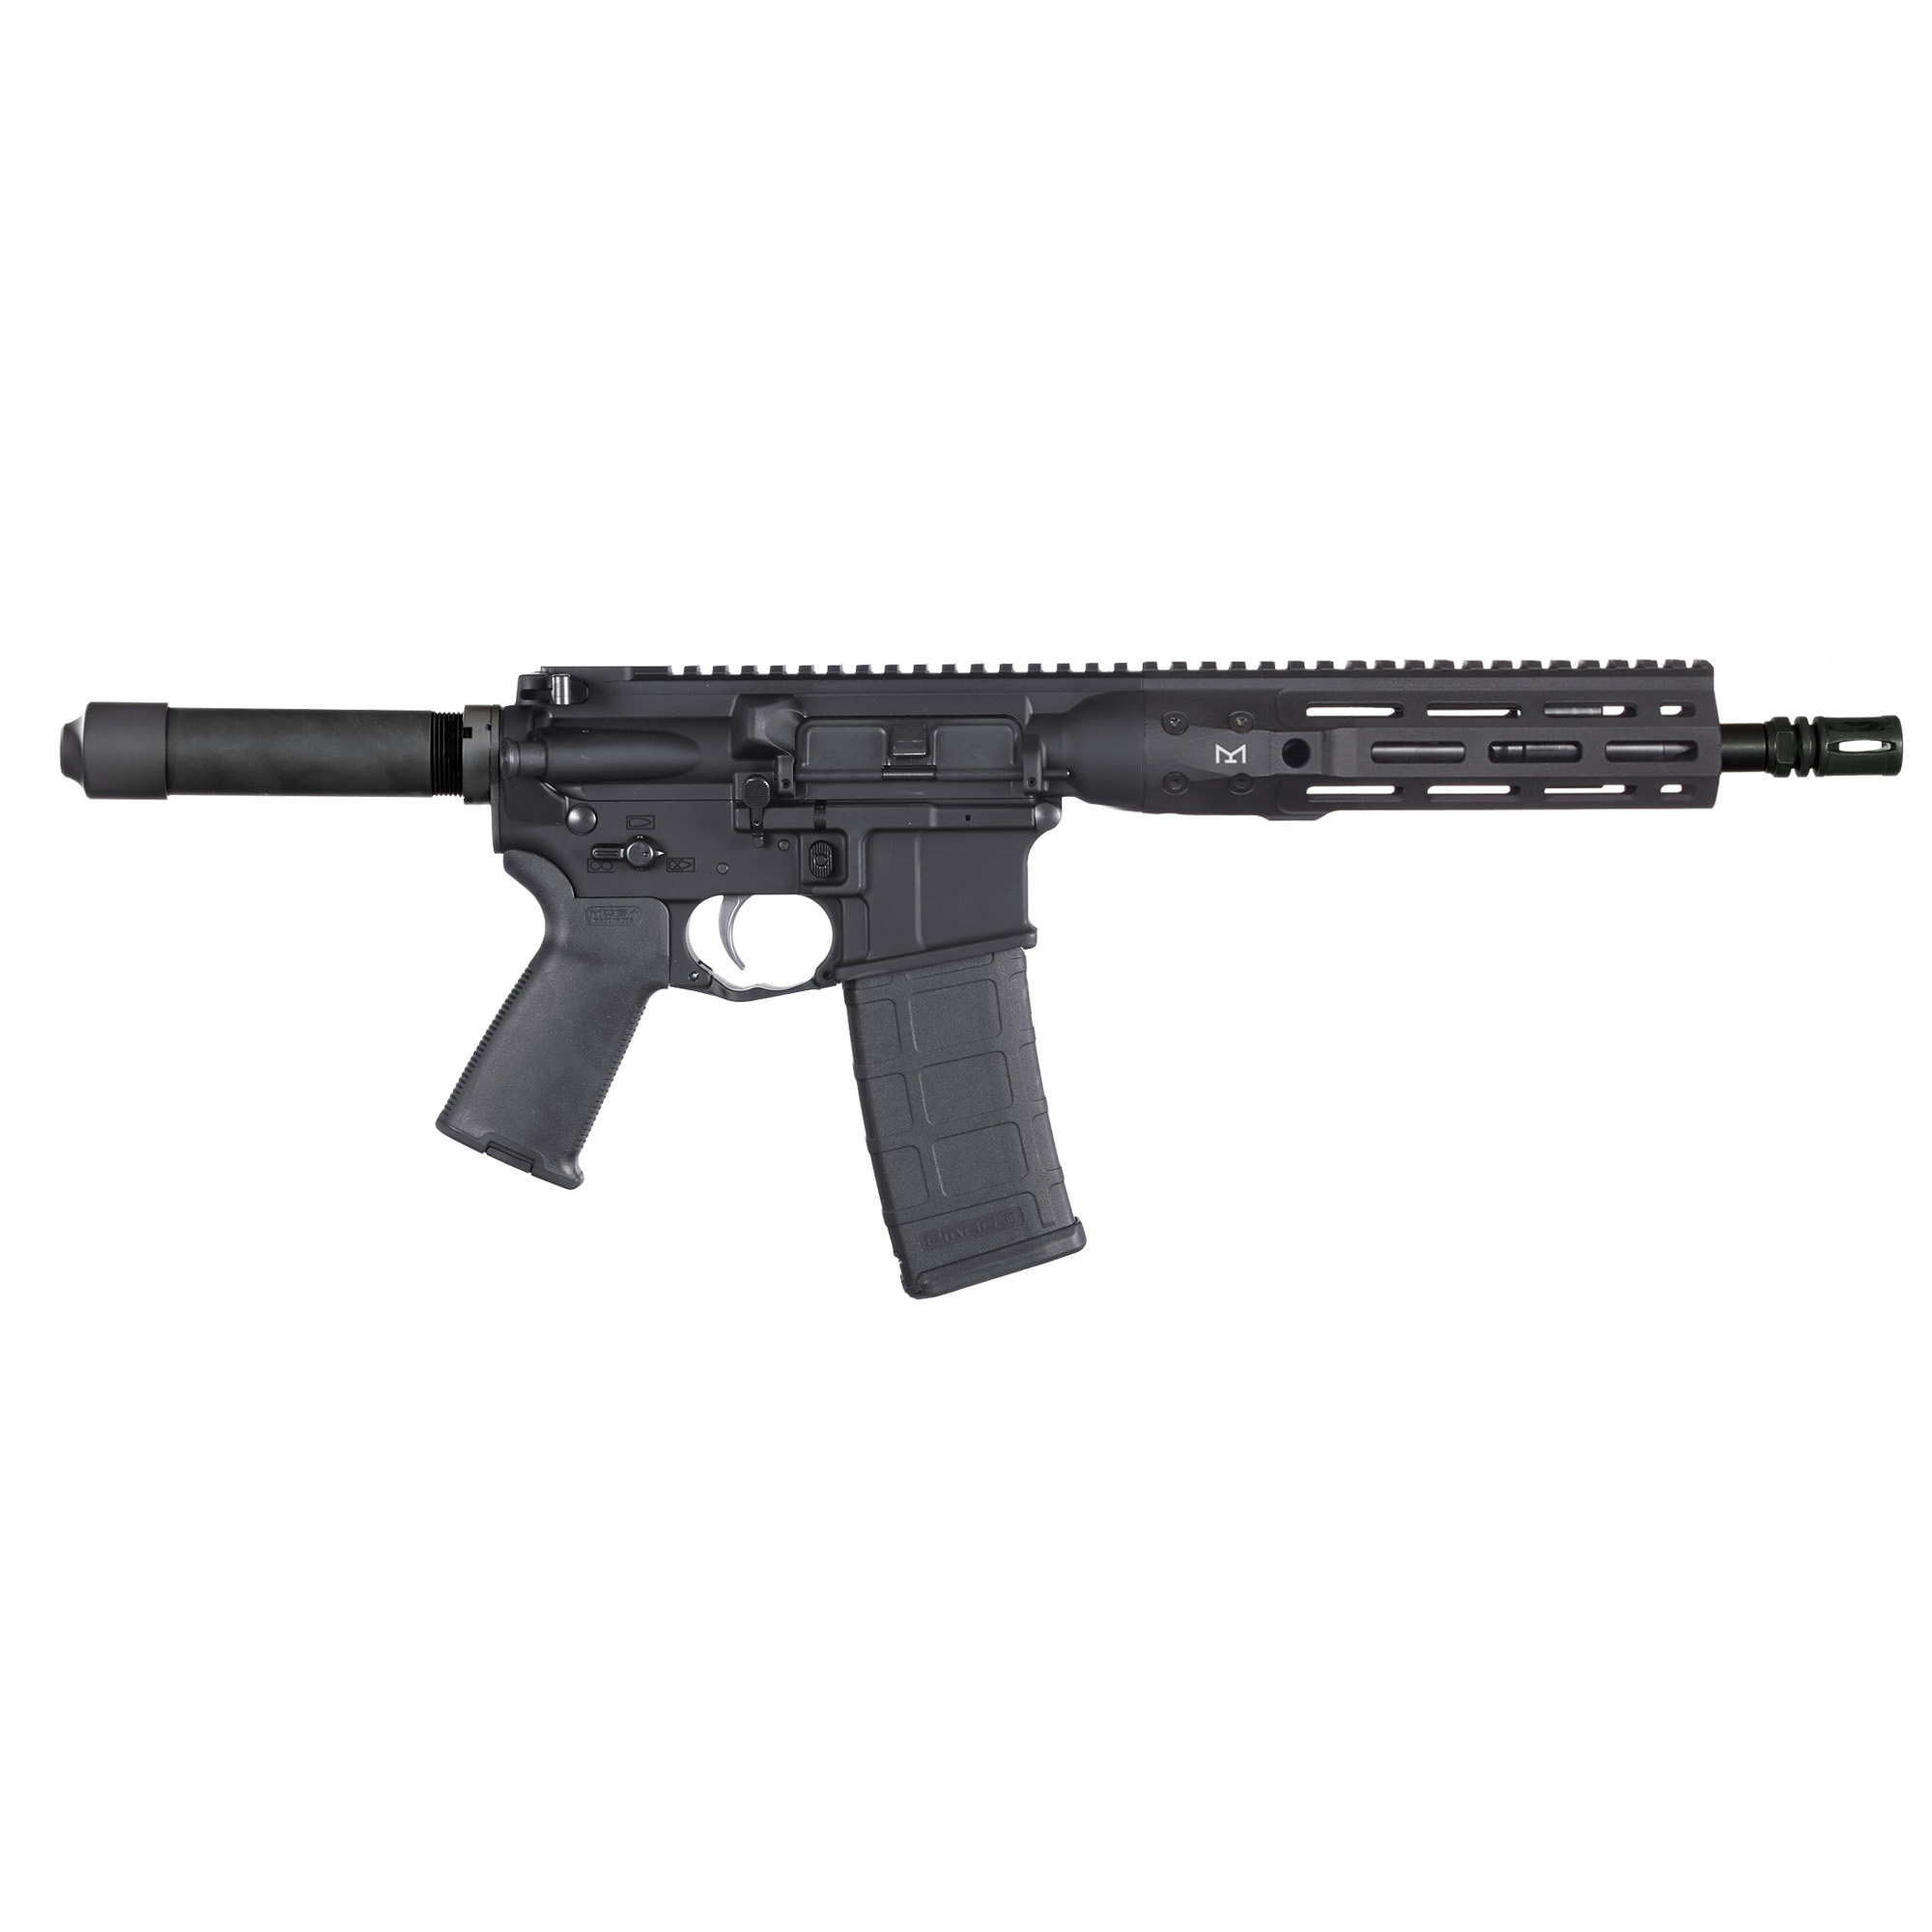 "The LWRCI(TM) Di Pistol is made with the same craftsmanship and design excellence that comes with every LWRCI(TM) firearm. Built from the ground up to be more than just another direct impingement pistol"" the LWRCI(TM) Di MLOK Pistol delivers the quality every rifle enthusiast demands with innovation that's expected from LWRCI(TM)."